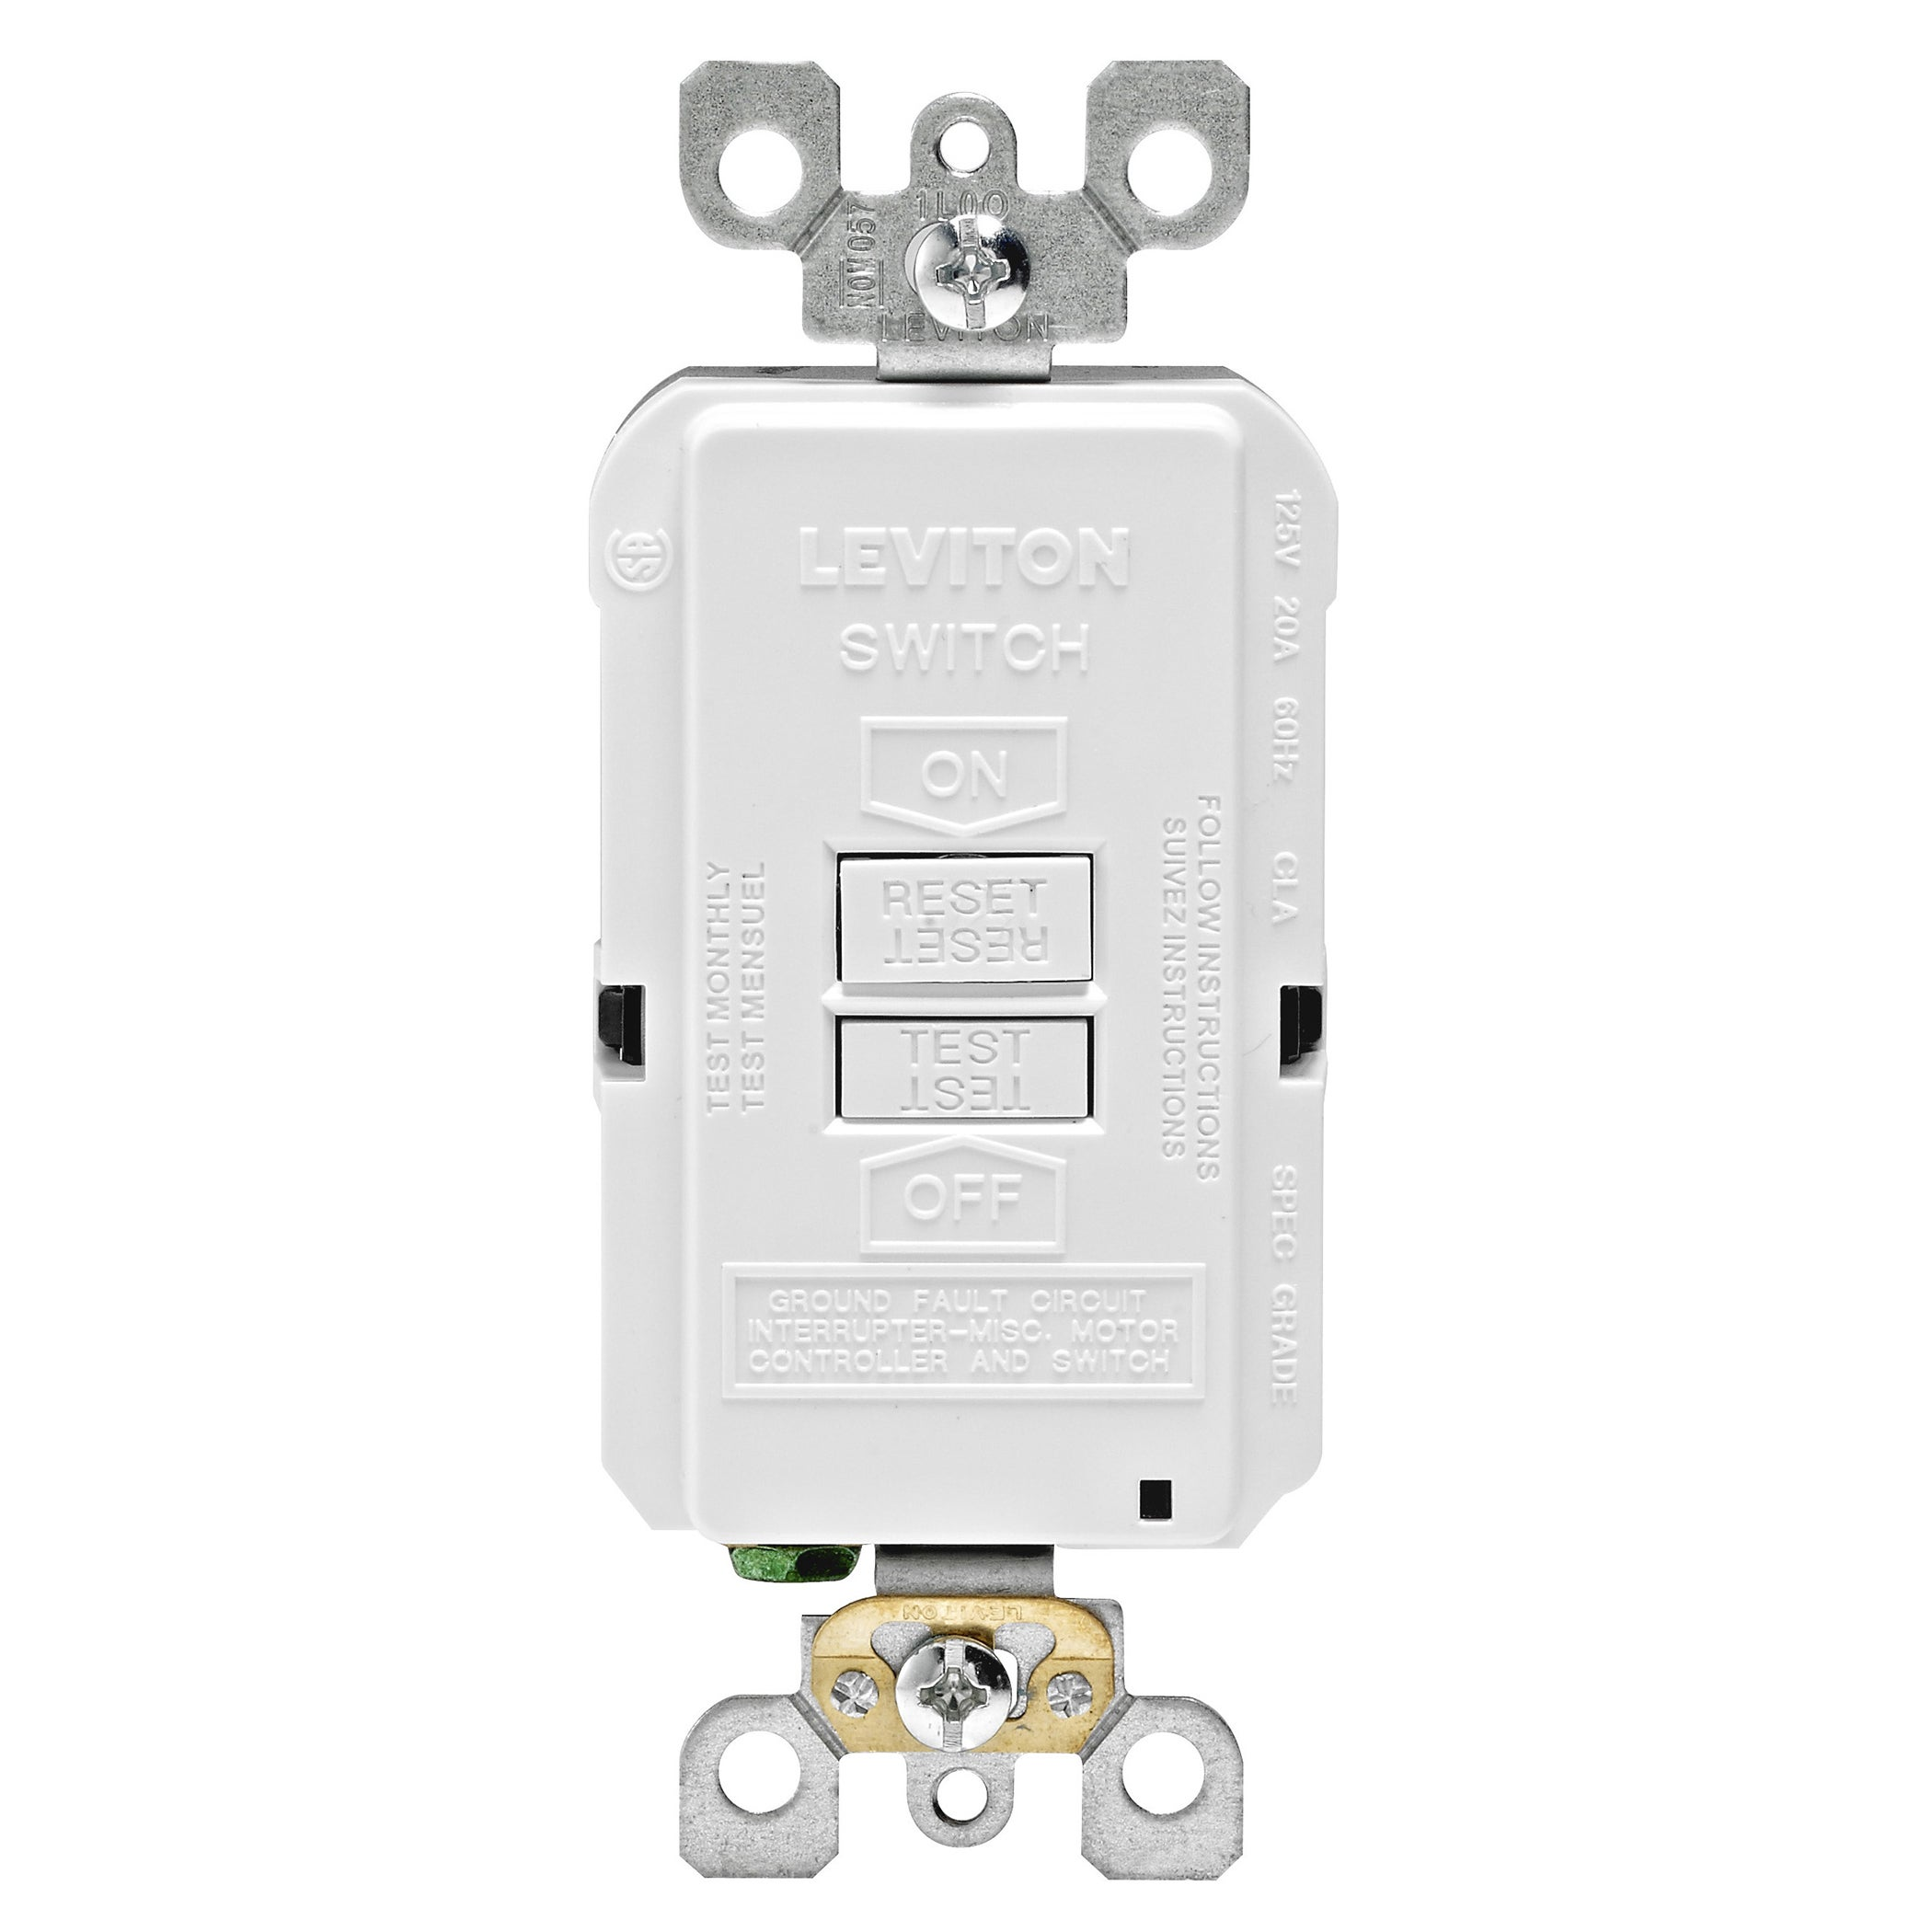 Shop Leviton Gfci Receptacle 20 Amps 5 20r 125 Volts White Free An Overview Of Groundfault Circuit Interrupter Eep Shipping On Orders Over 45 11953050